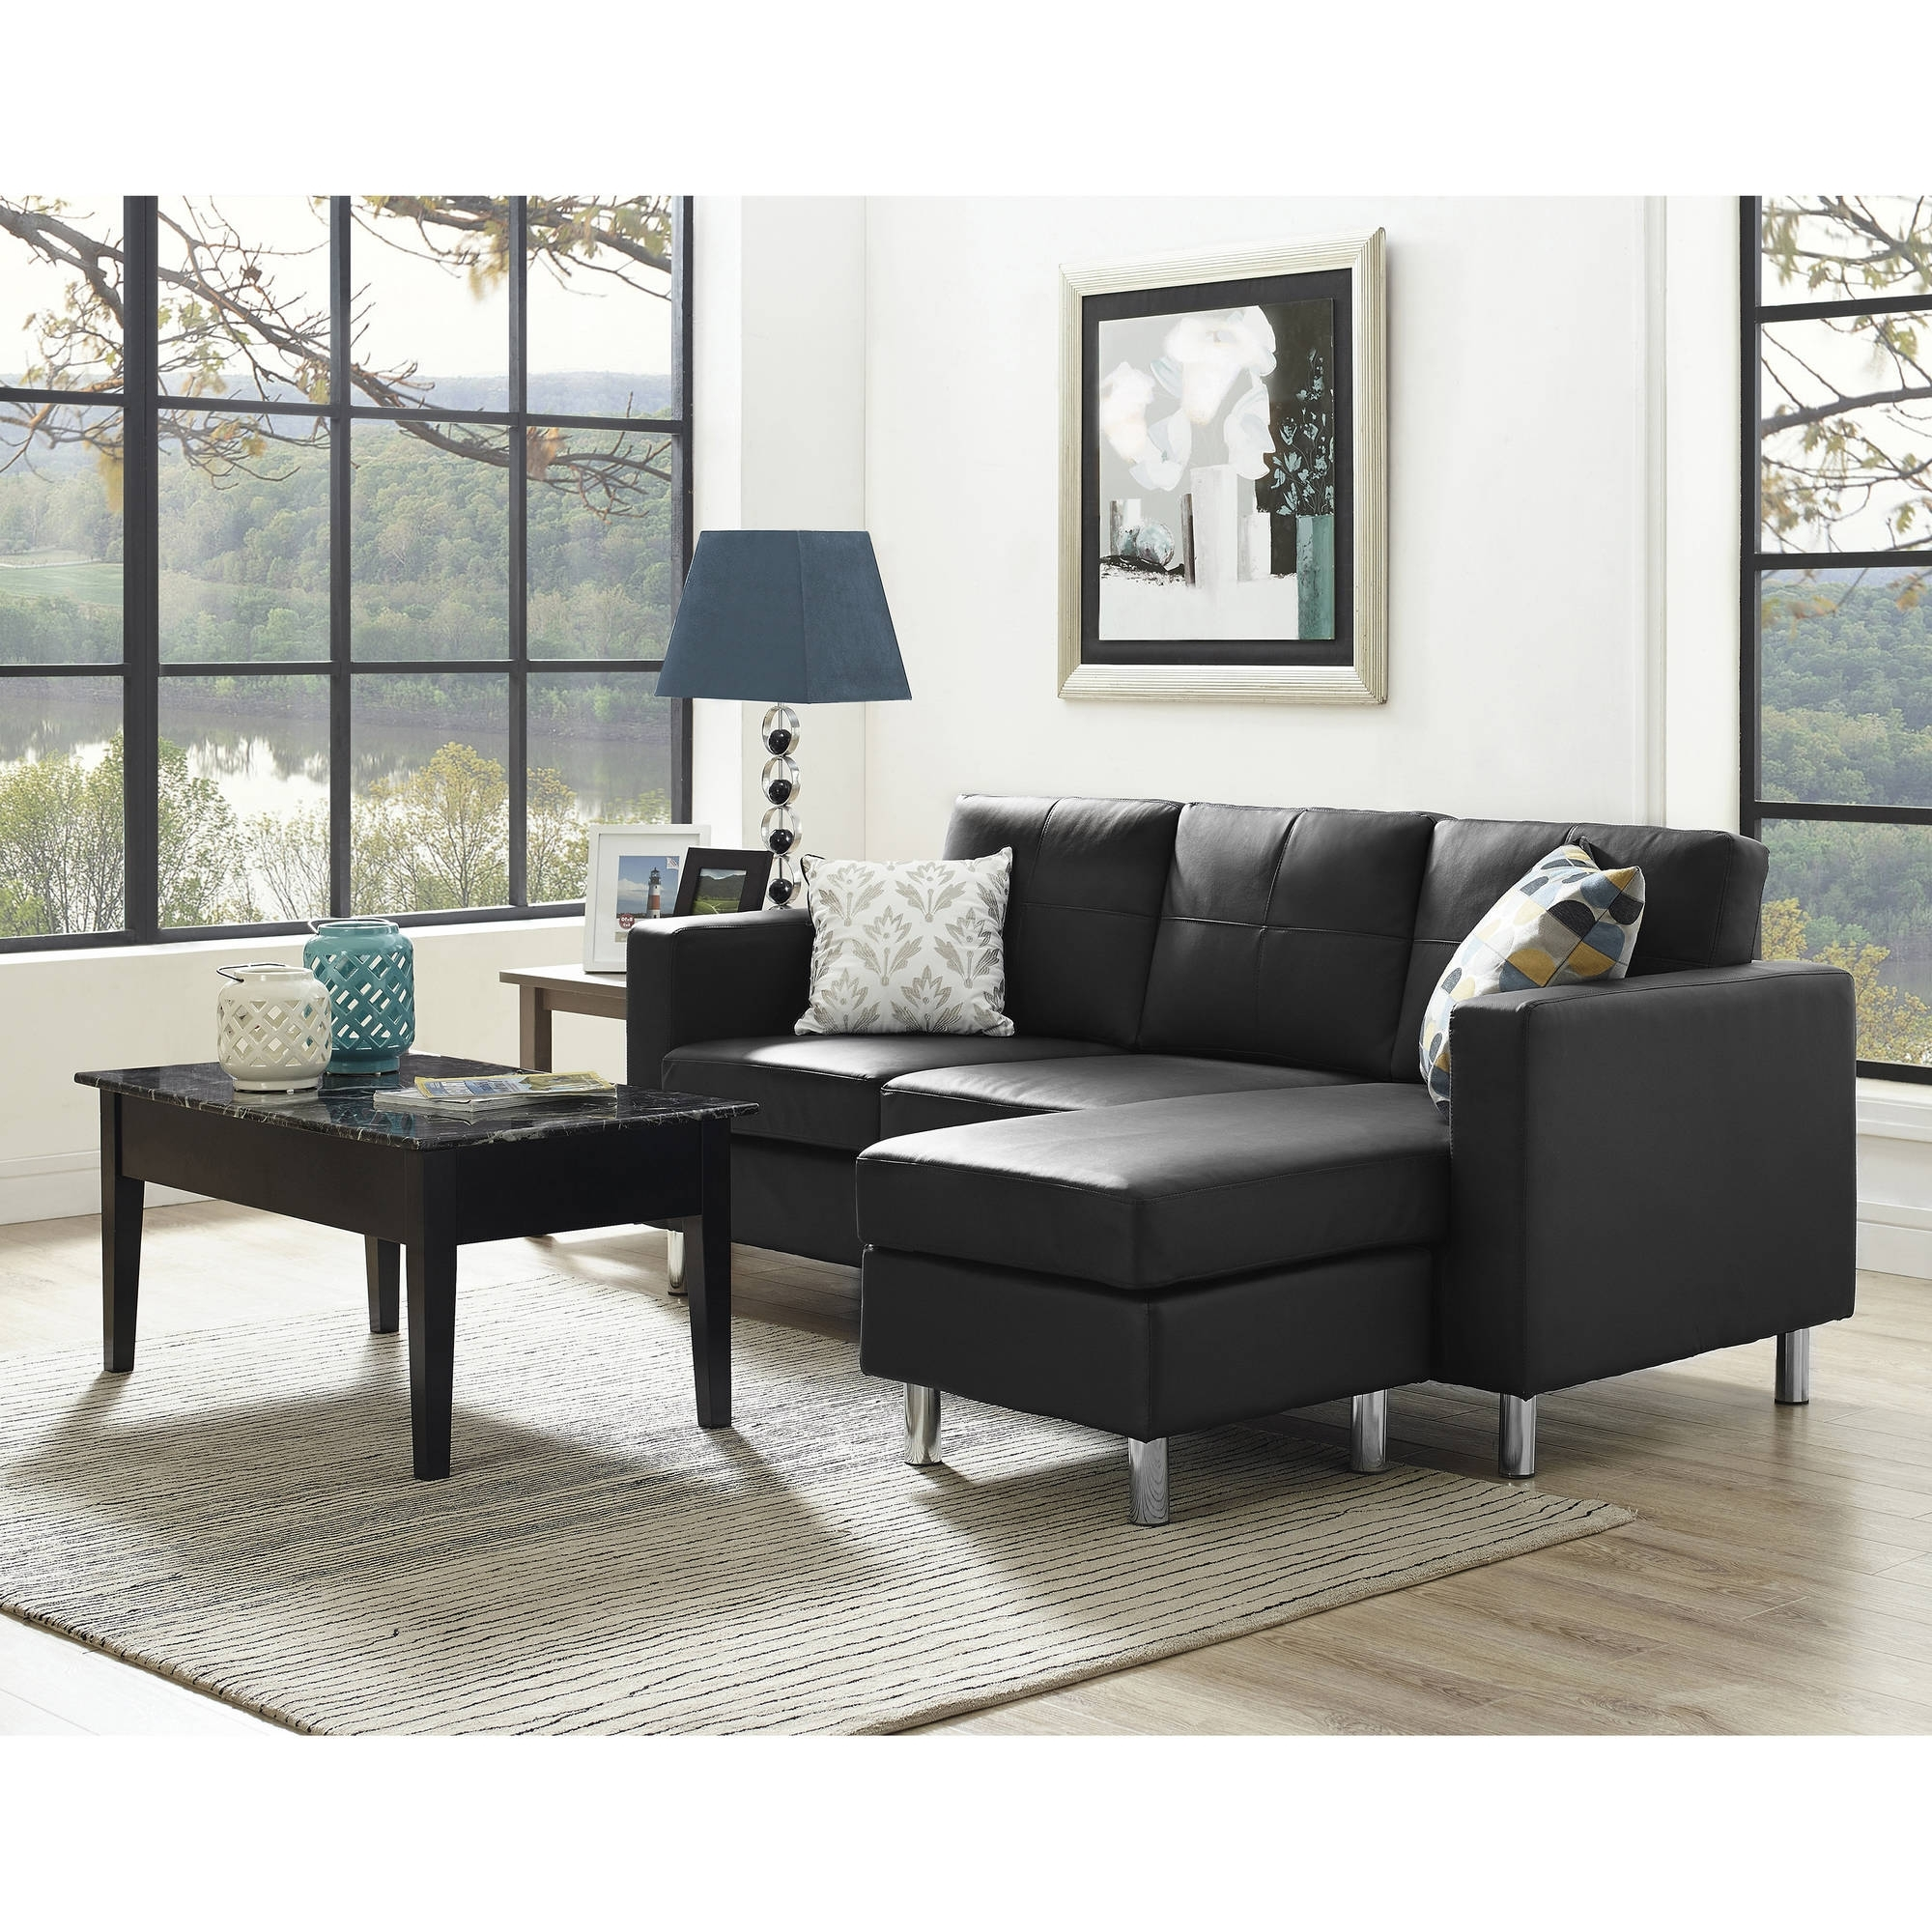 Newest Small Sectional Sofas With Chaise And Ottoman Within Dorel Living Small Spaces Configurable Sectional Sofa, Multiple (View 3 of 15)